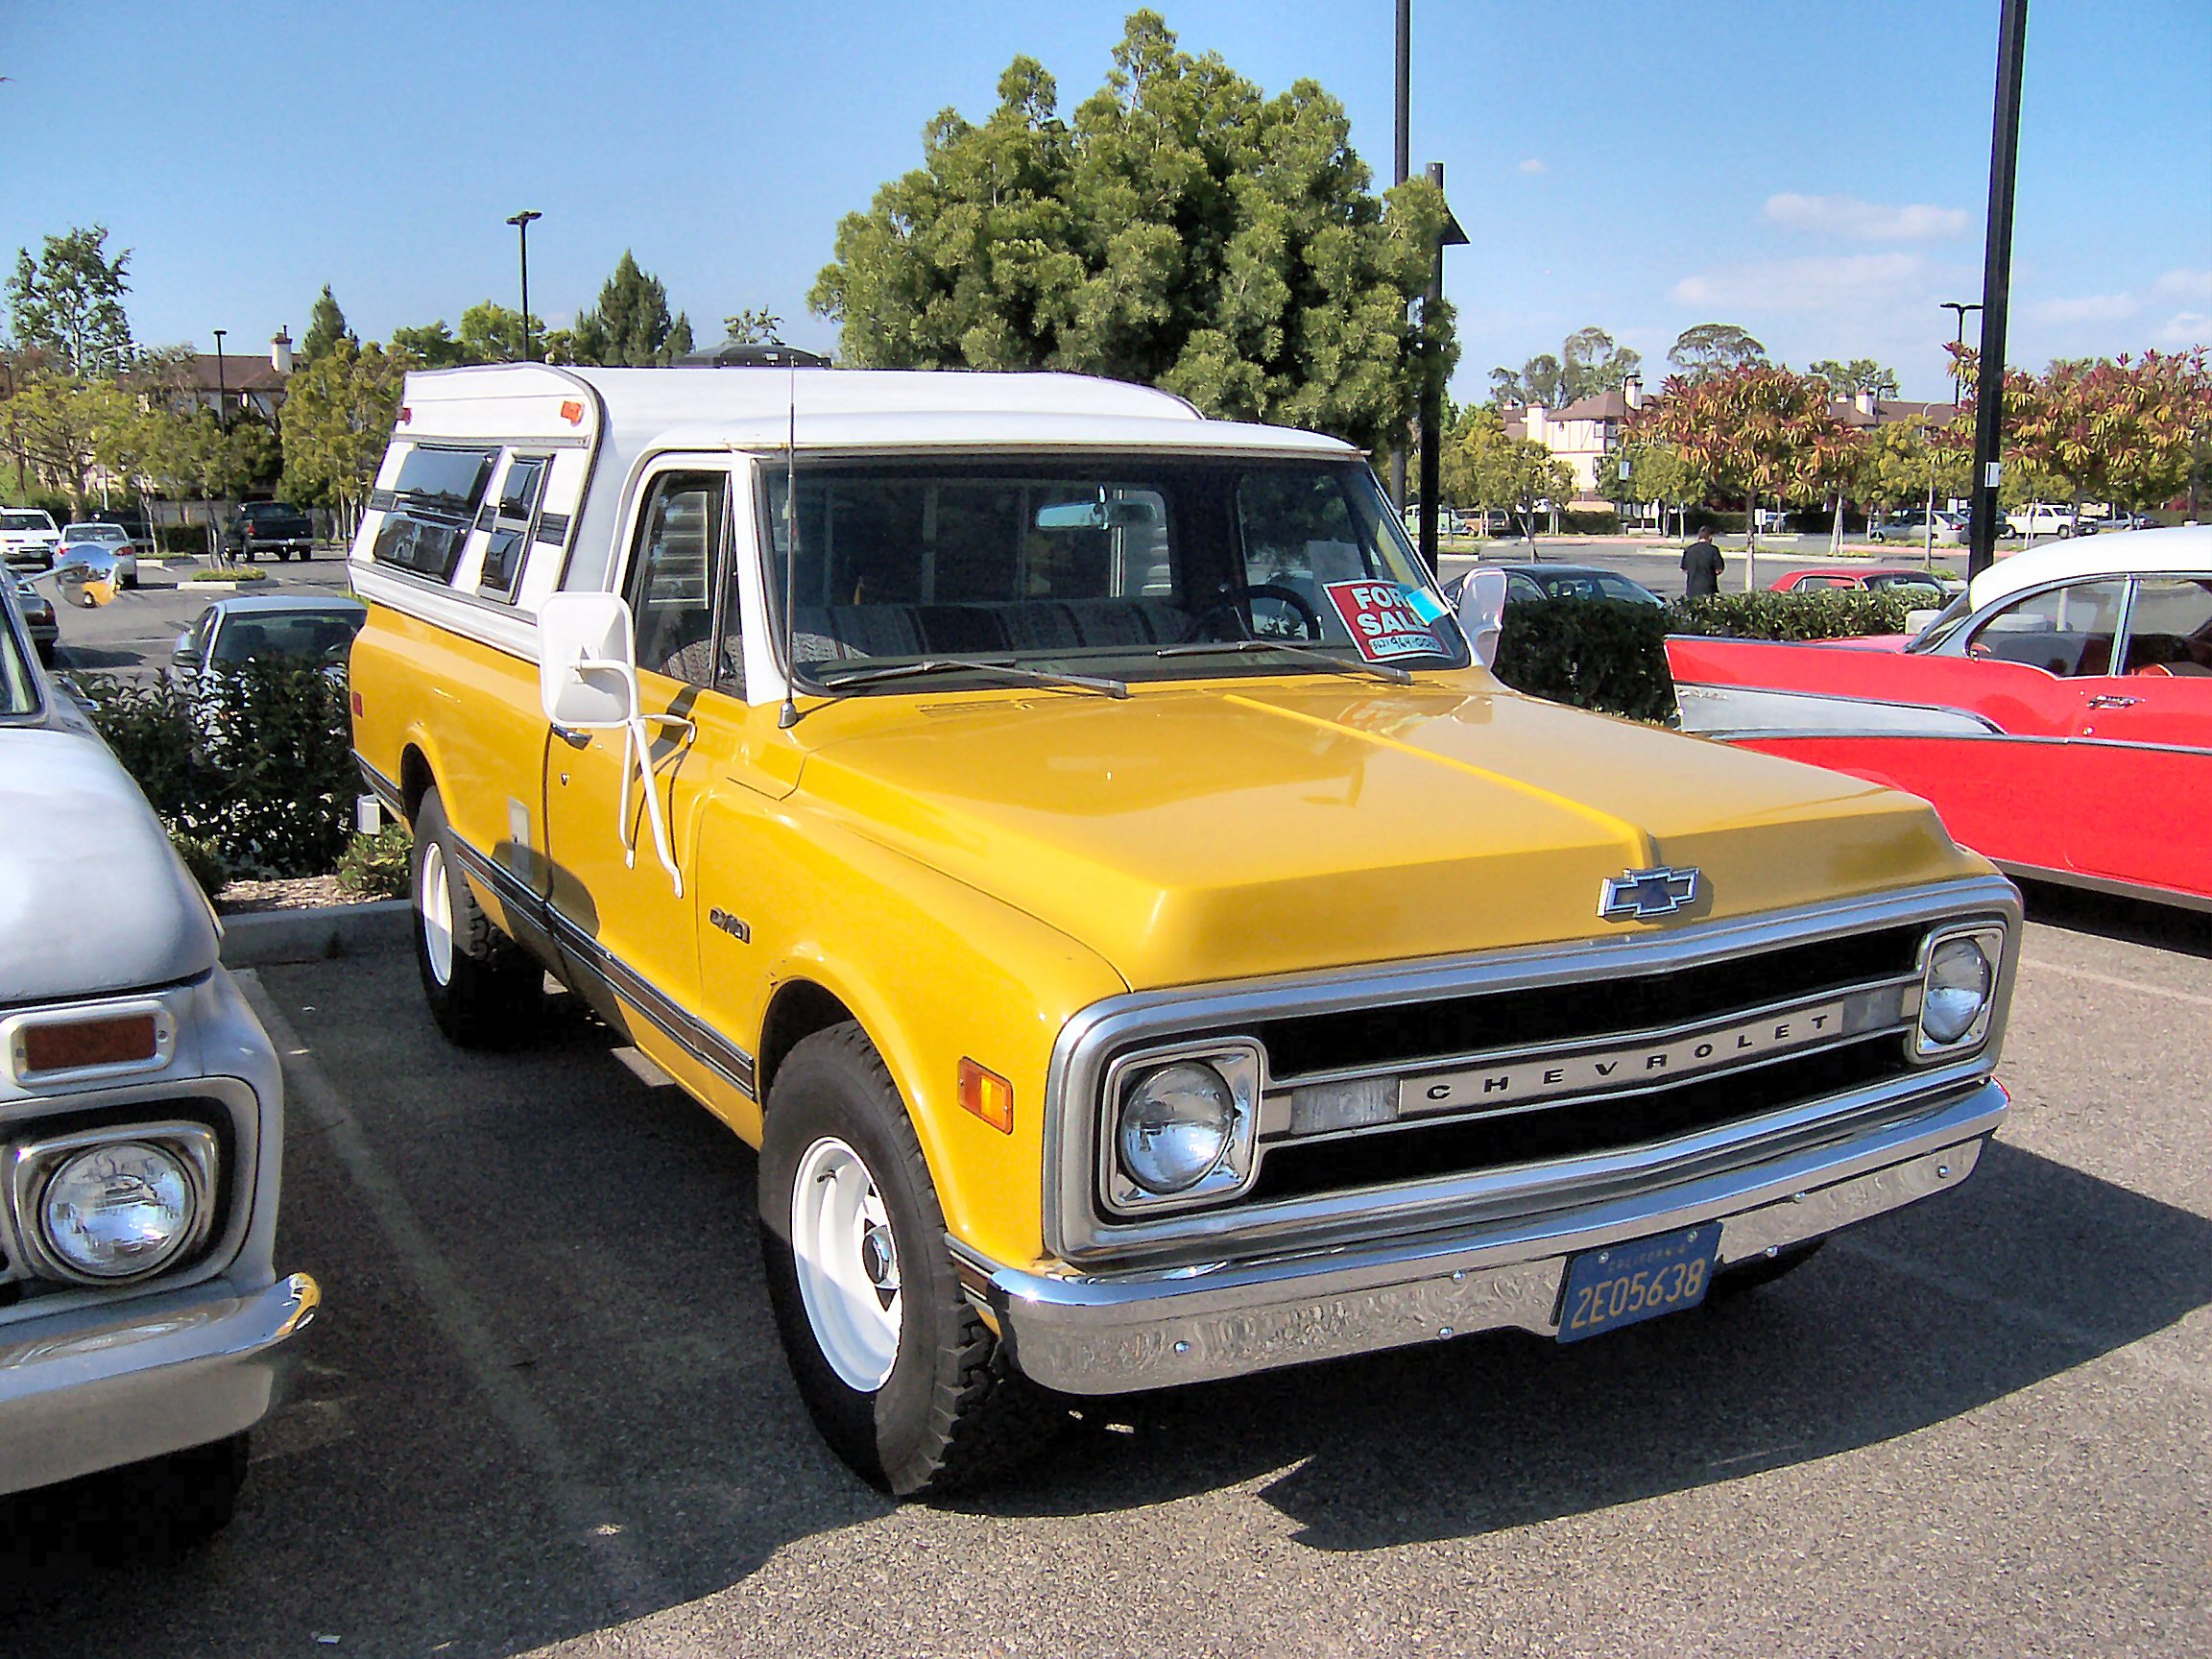 Curbside Classic 1967 Chevrolet C20 Pickup The Truth About Cars 1968 Chevy Truck For Sale Clean Eggcrate Grille Of 71 72 Is Hard To Beat Its Good Looks Maybe Best Looking Ever 1973 Model That Replaced Them